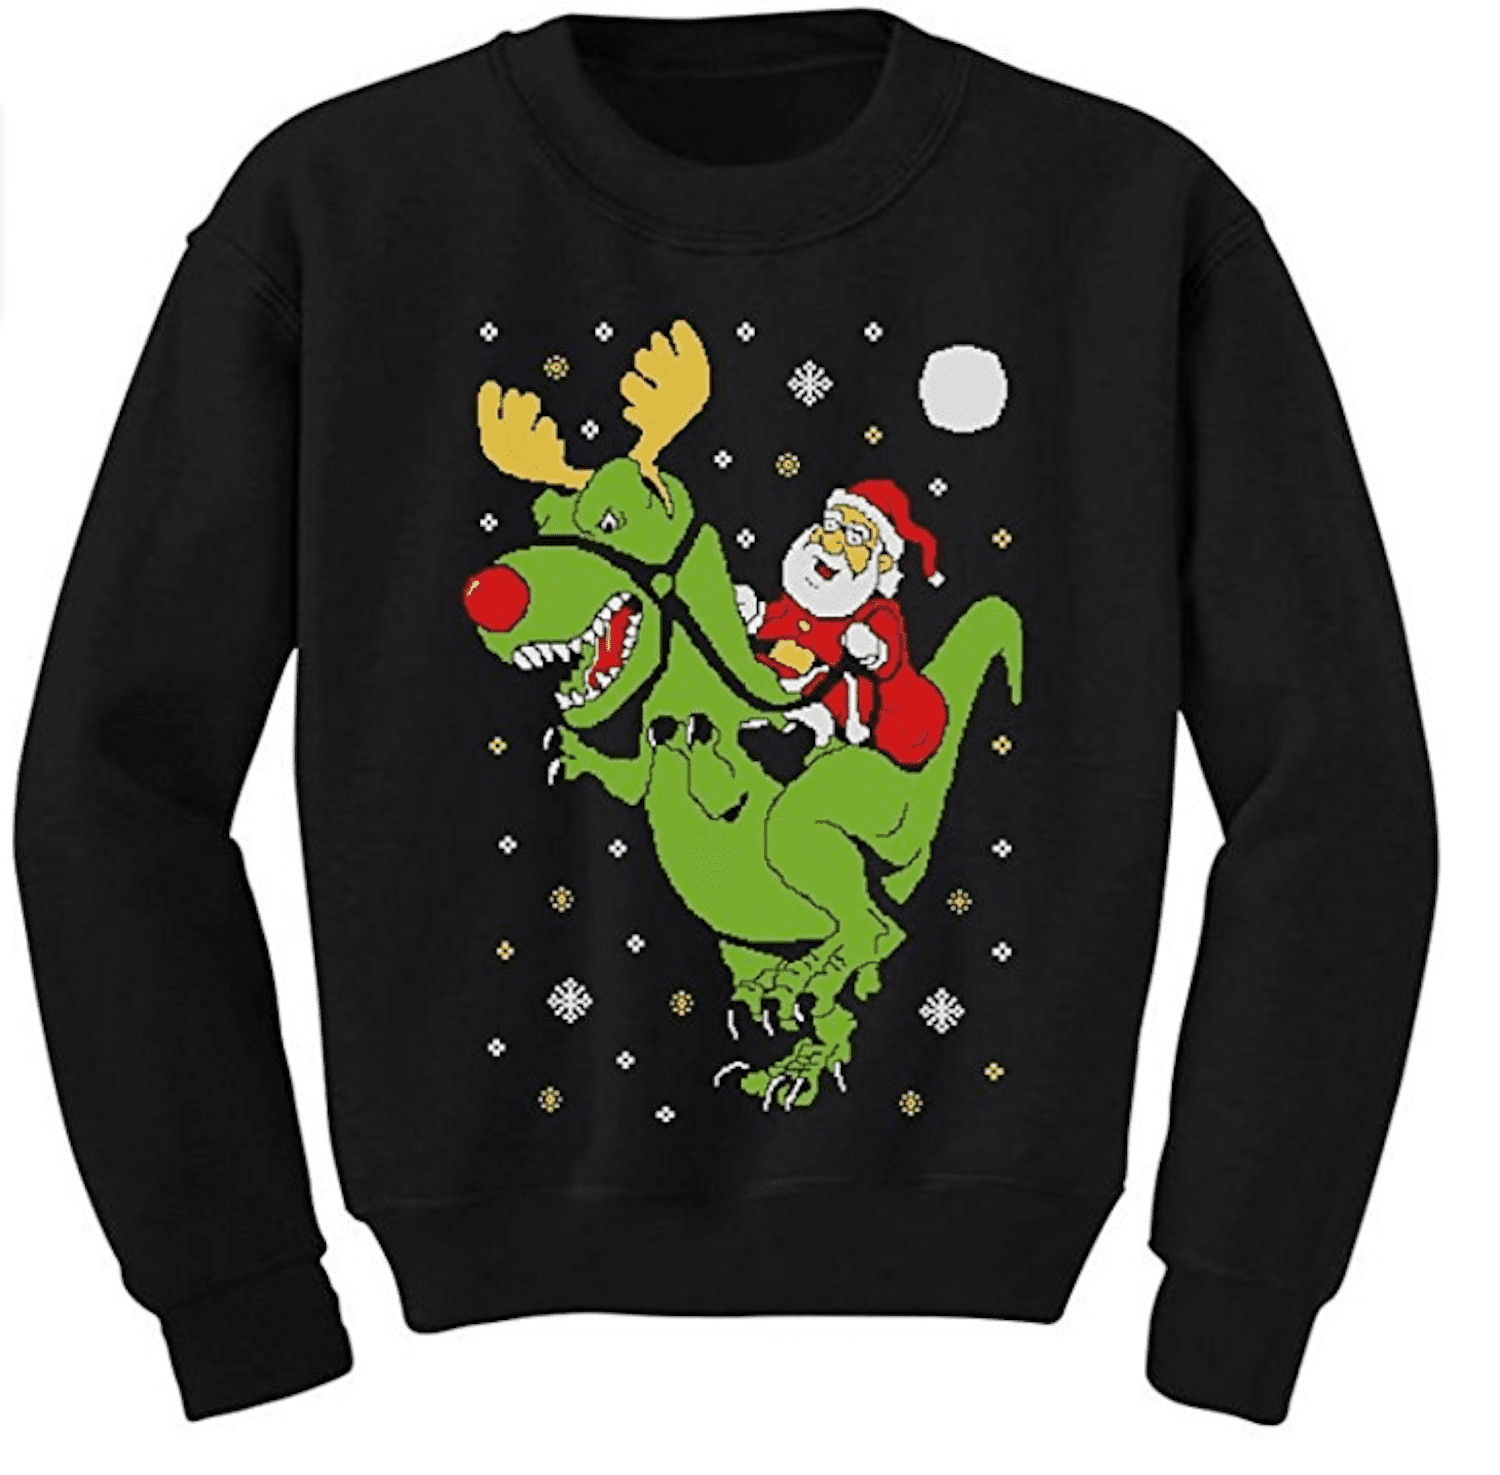 Ugly christmas sweater gingerbread man. Cutest sweaters for